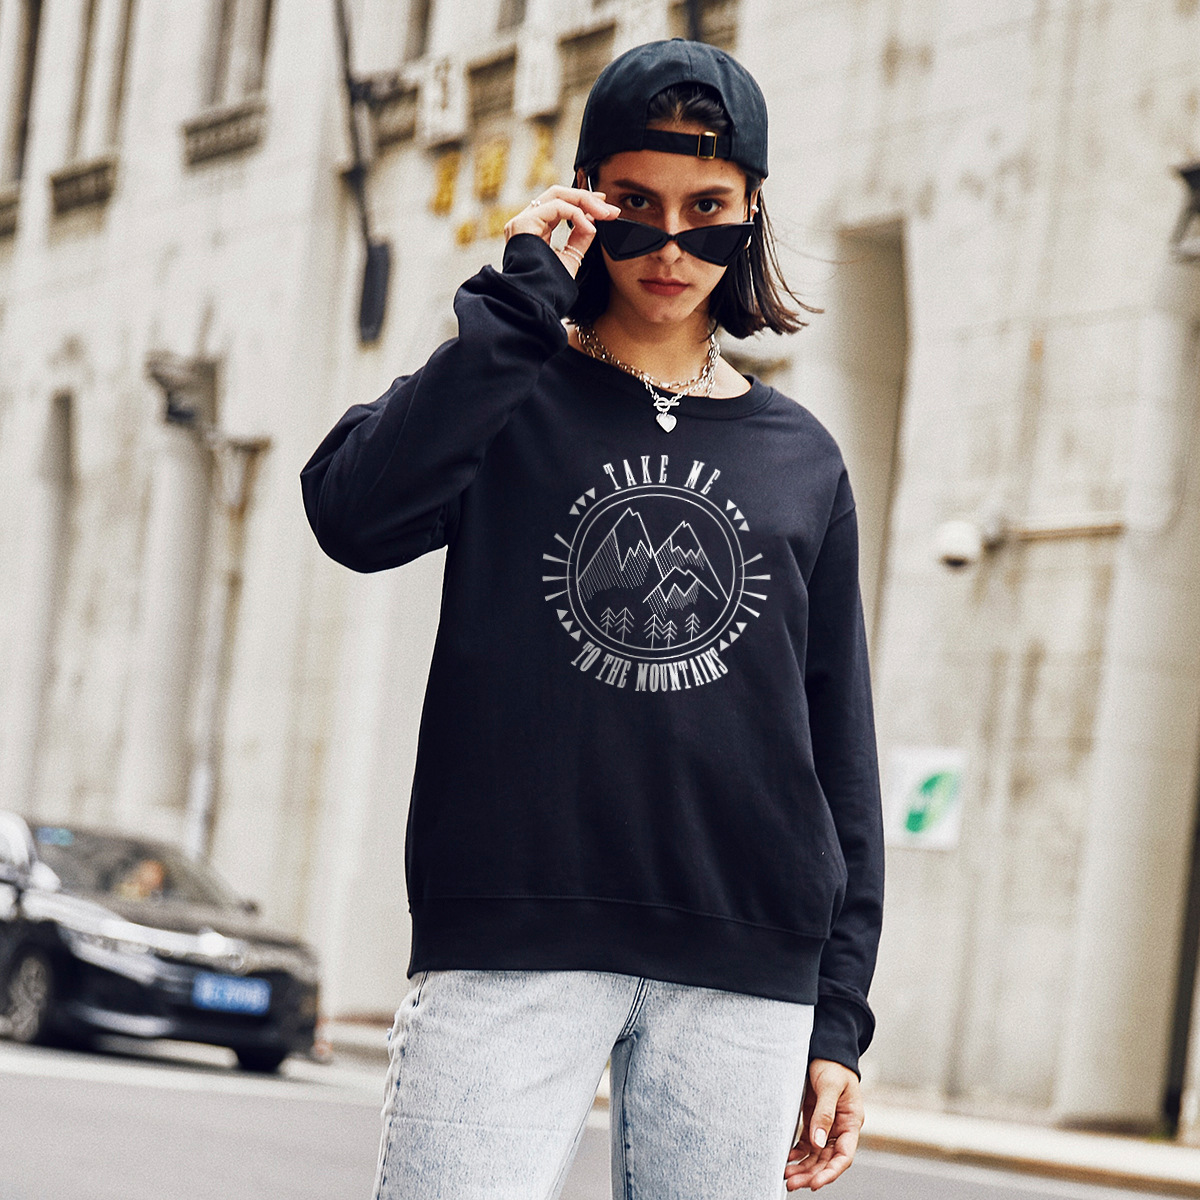 new autumn and winter women's round neck long sleeve street casual sweater NSSN4043